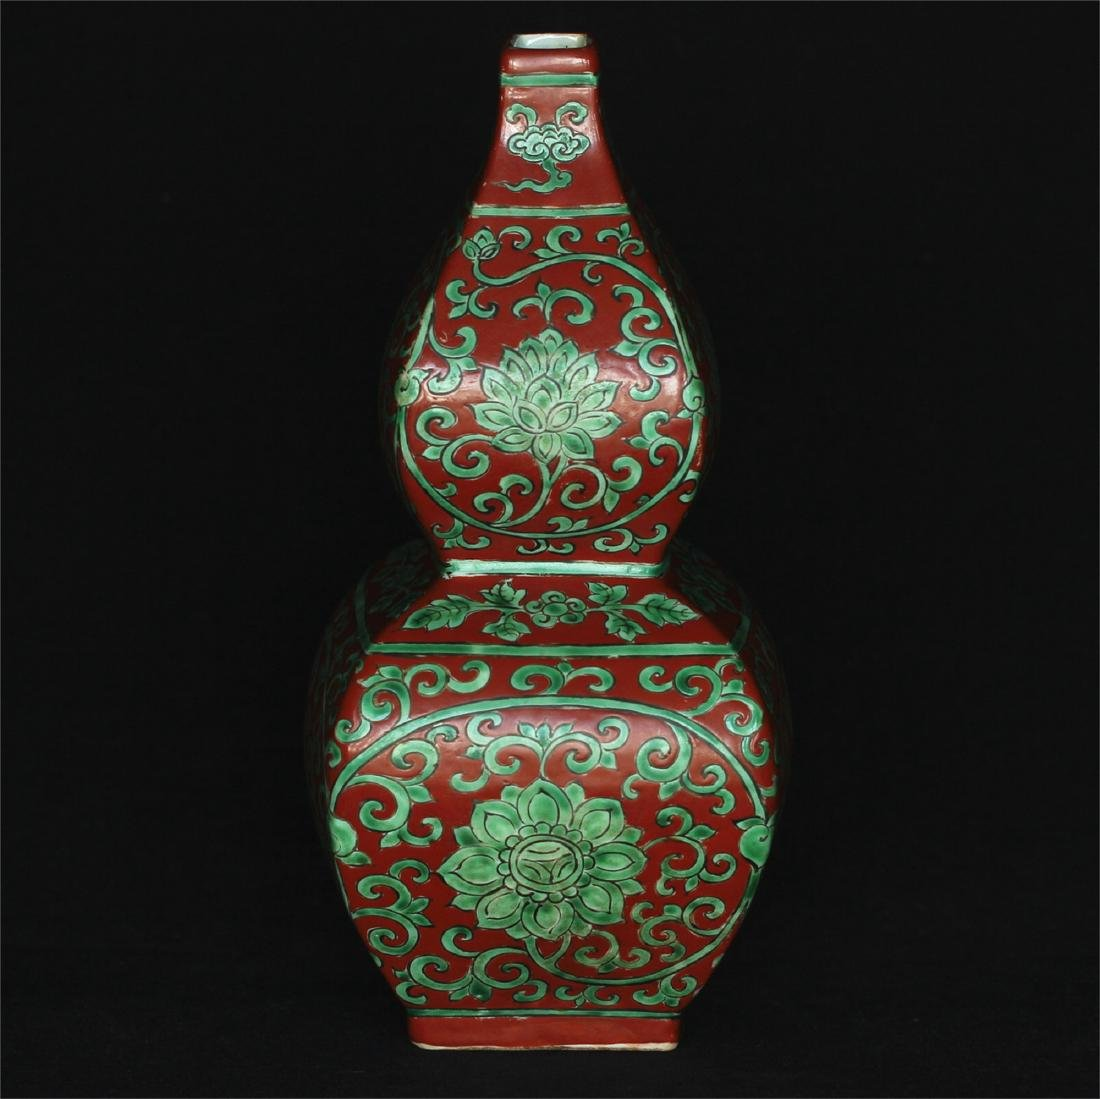 Chinese red & green porcelain vase of Ming Dynasty